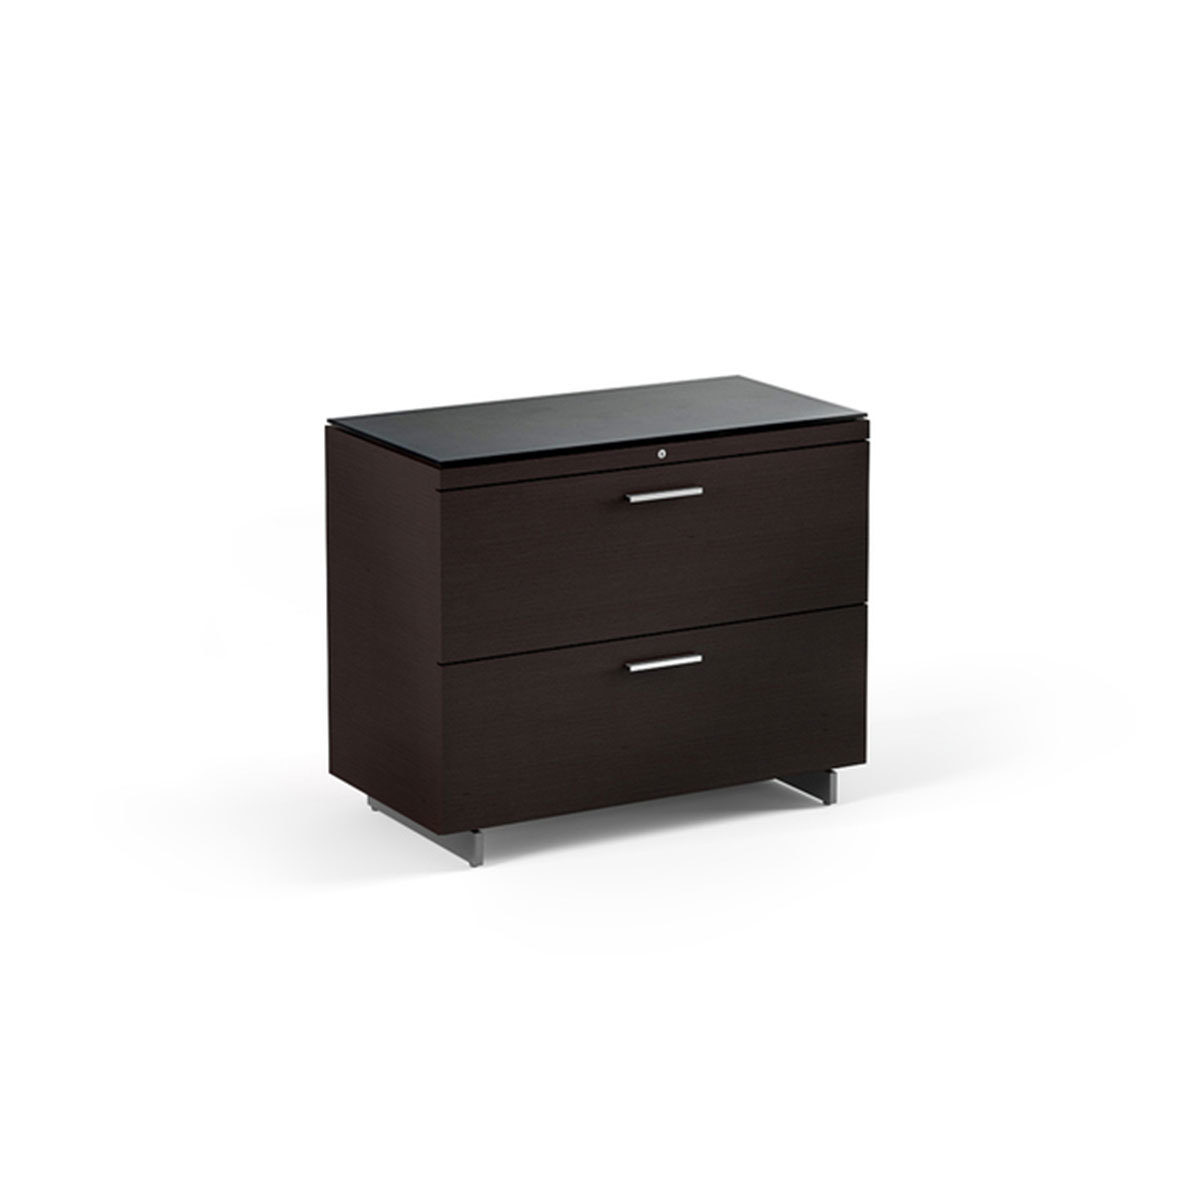 ... About Finishes. The Sequel Lateral File Cabinet ...